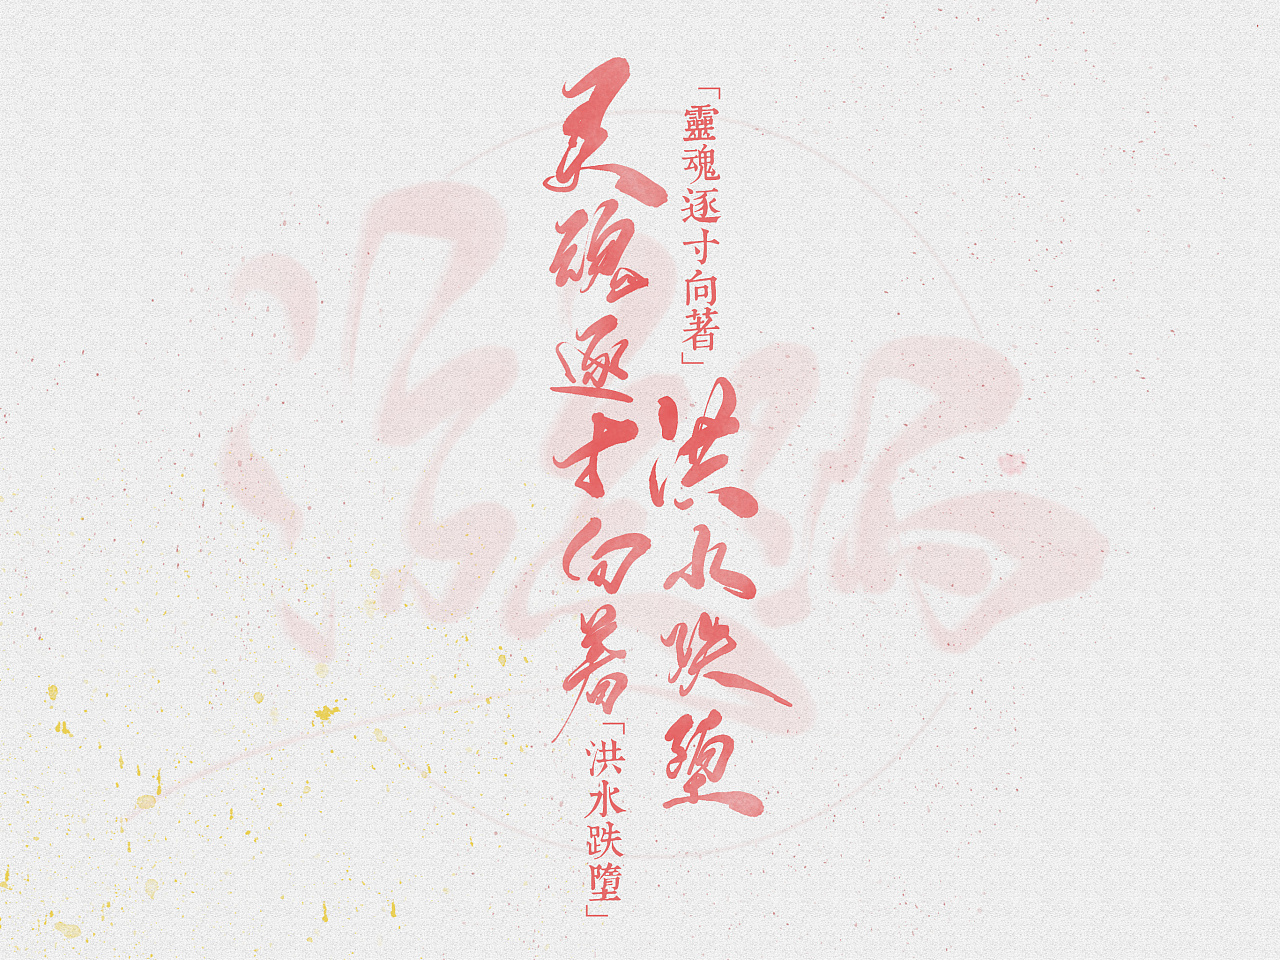 chinesefontdesign.com 2017 10 05 14 34 23 277853 9P Handwriting vortex Brush calligraphy font   Chinese Design Inspiration